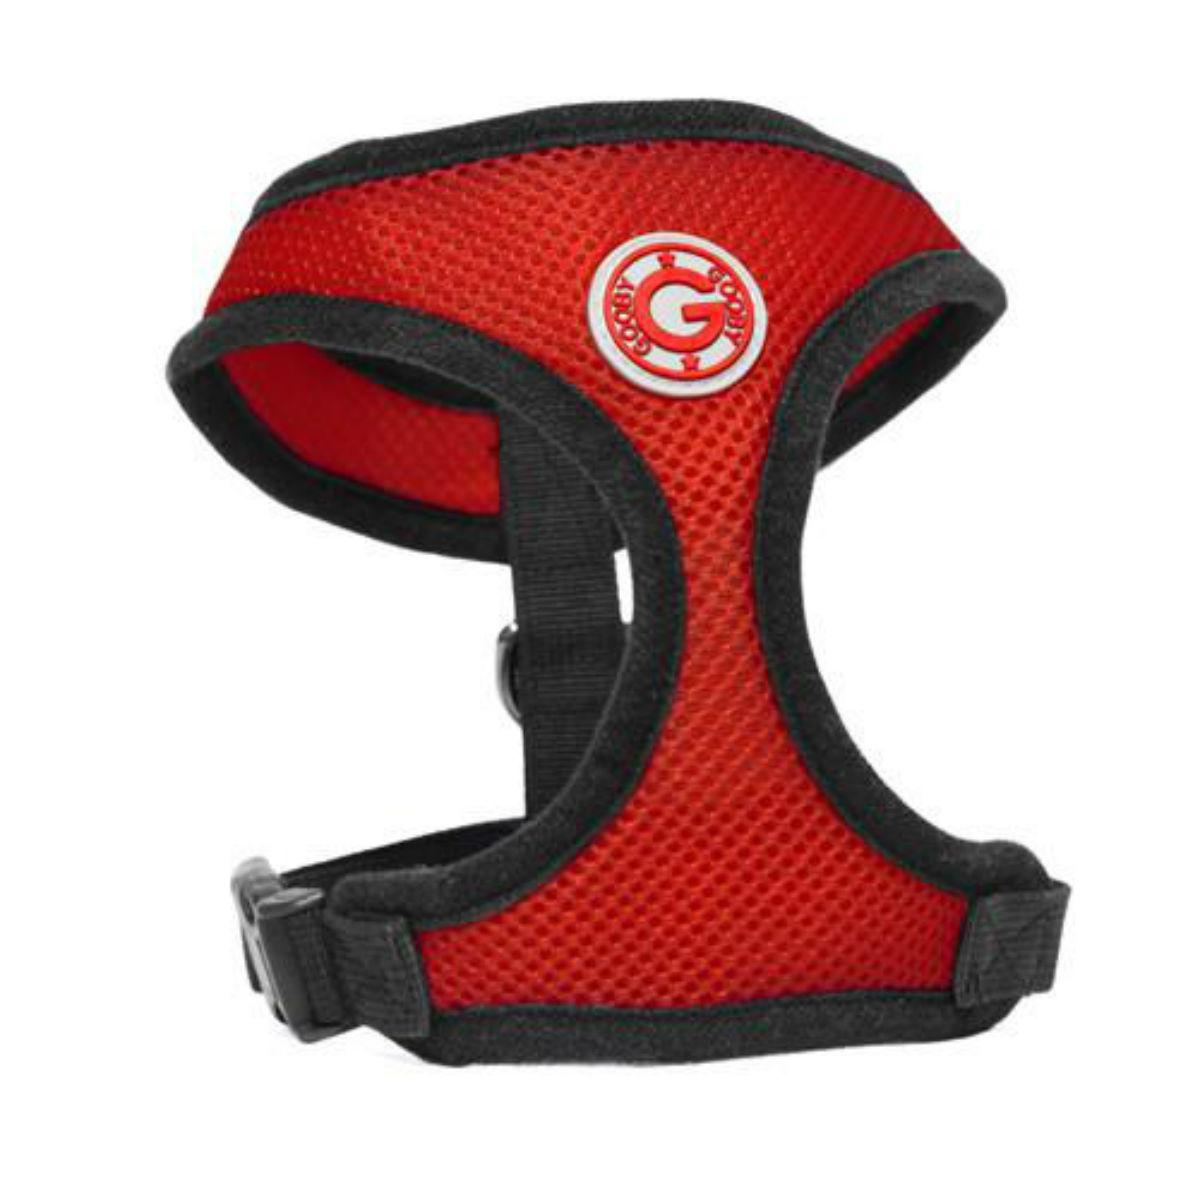 Gooby Soft Mesh Dog Harness - Red